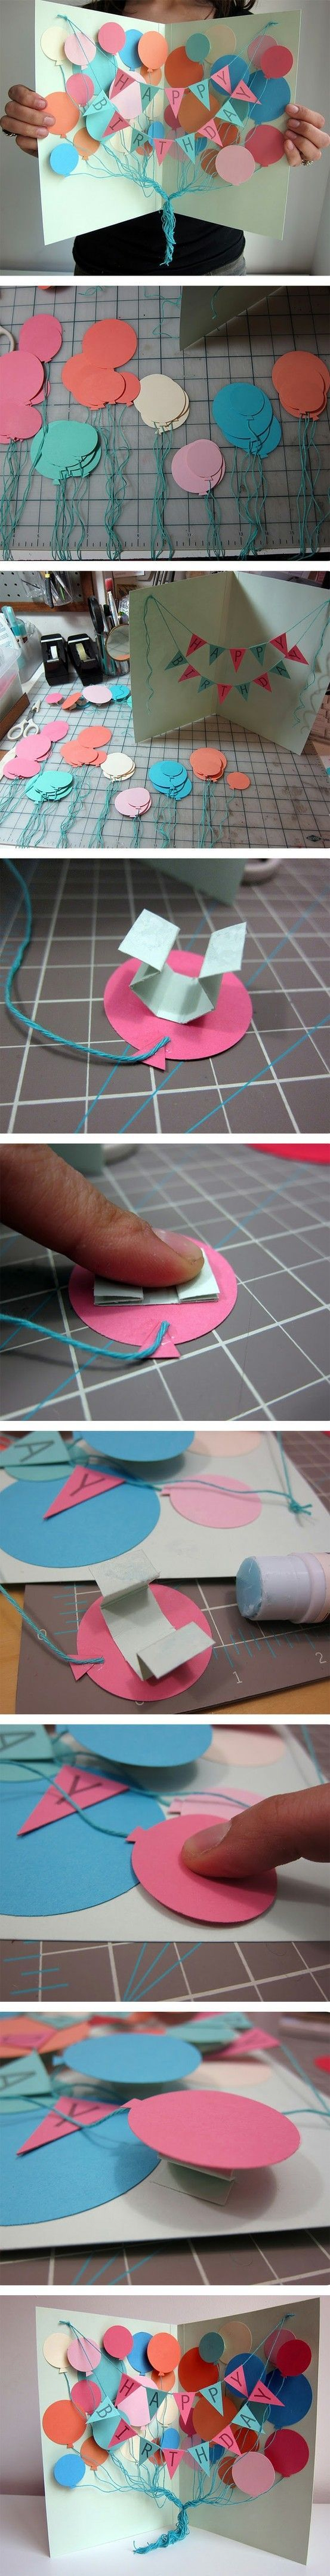 DIY Projects & Crafts